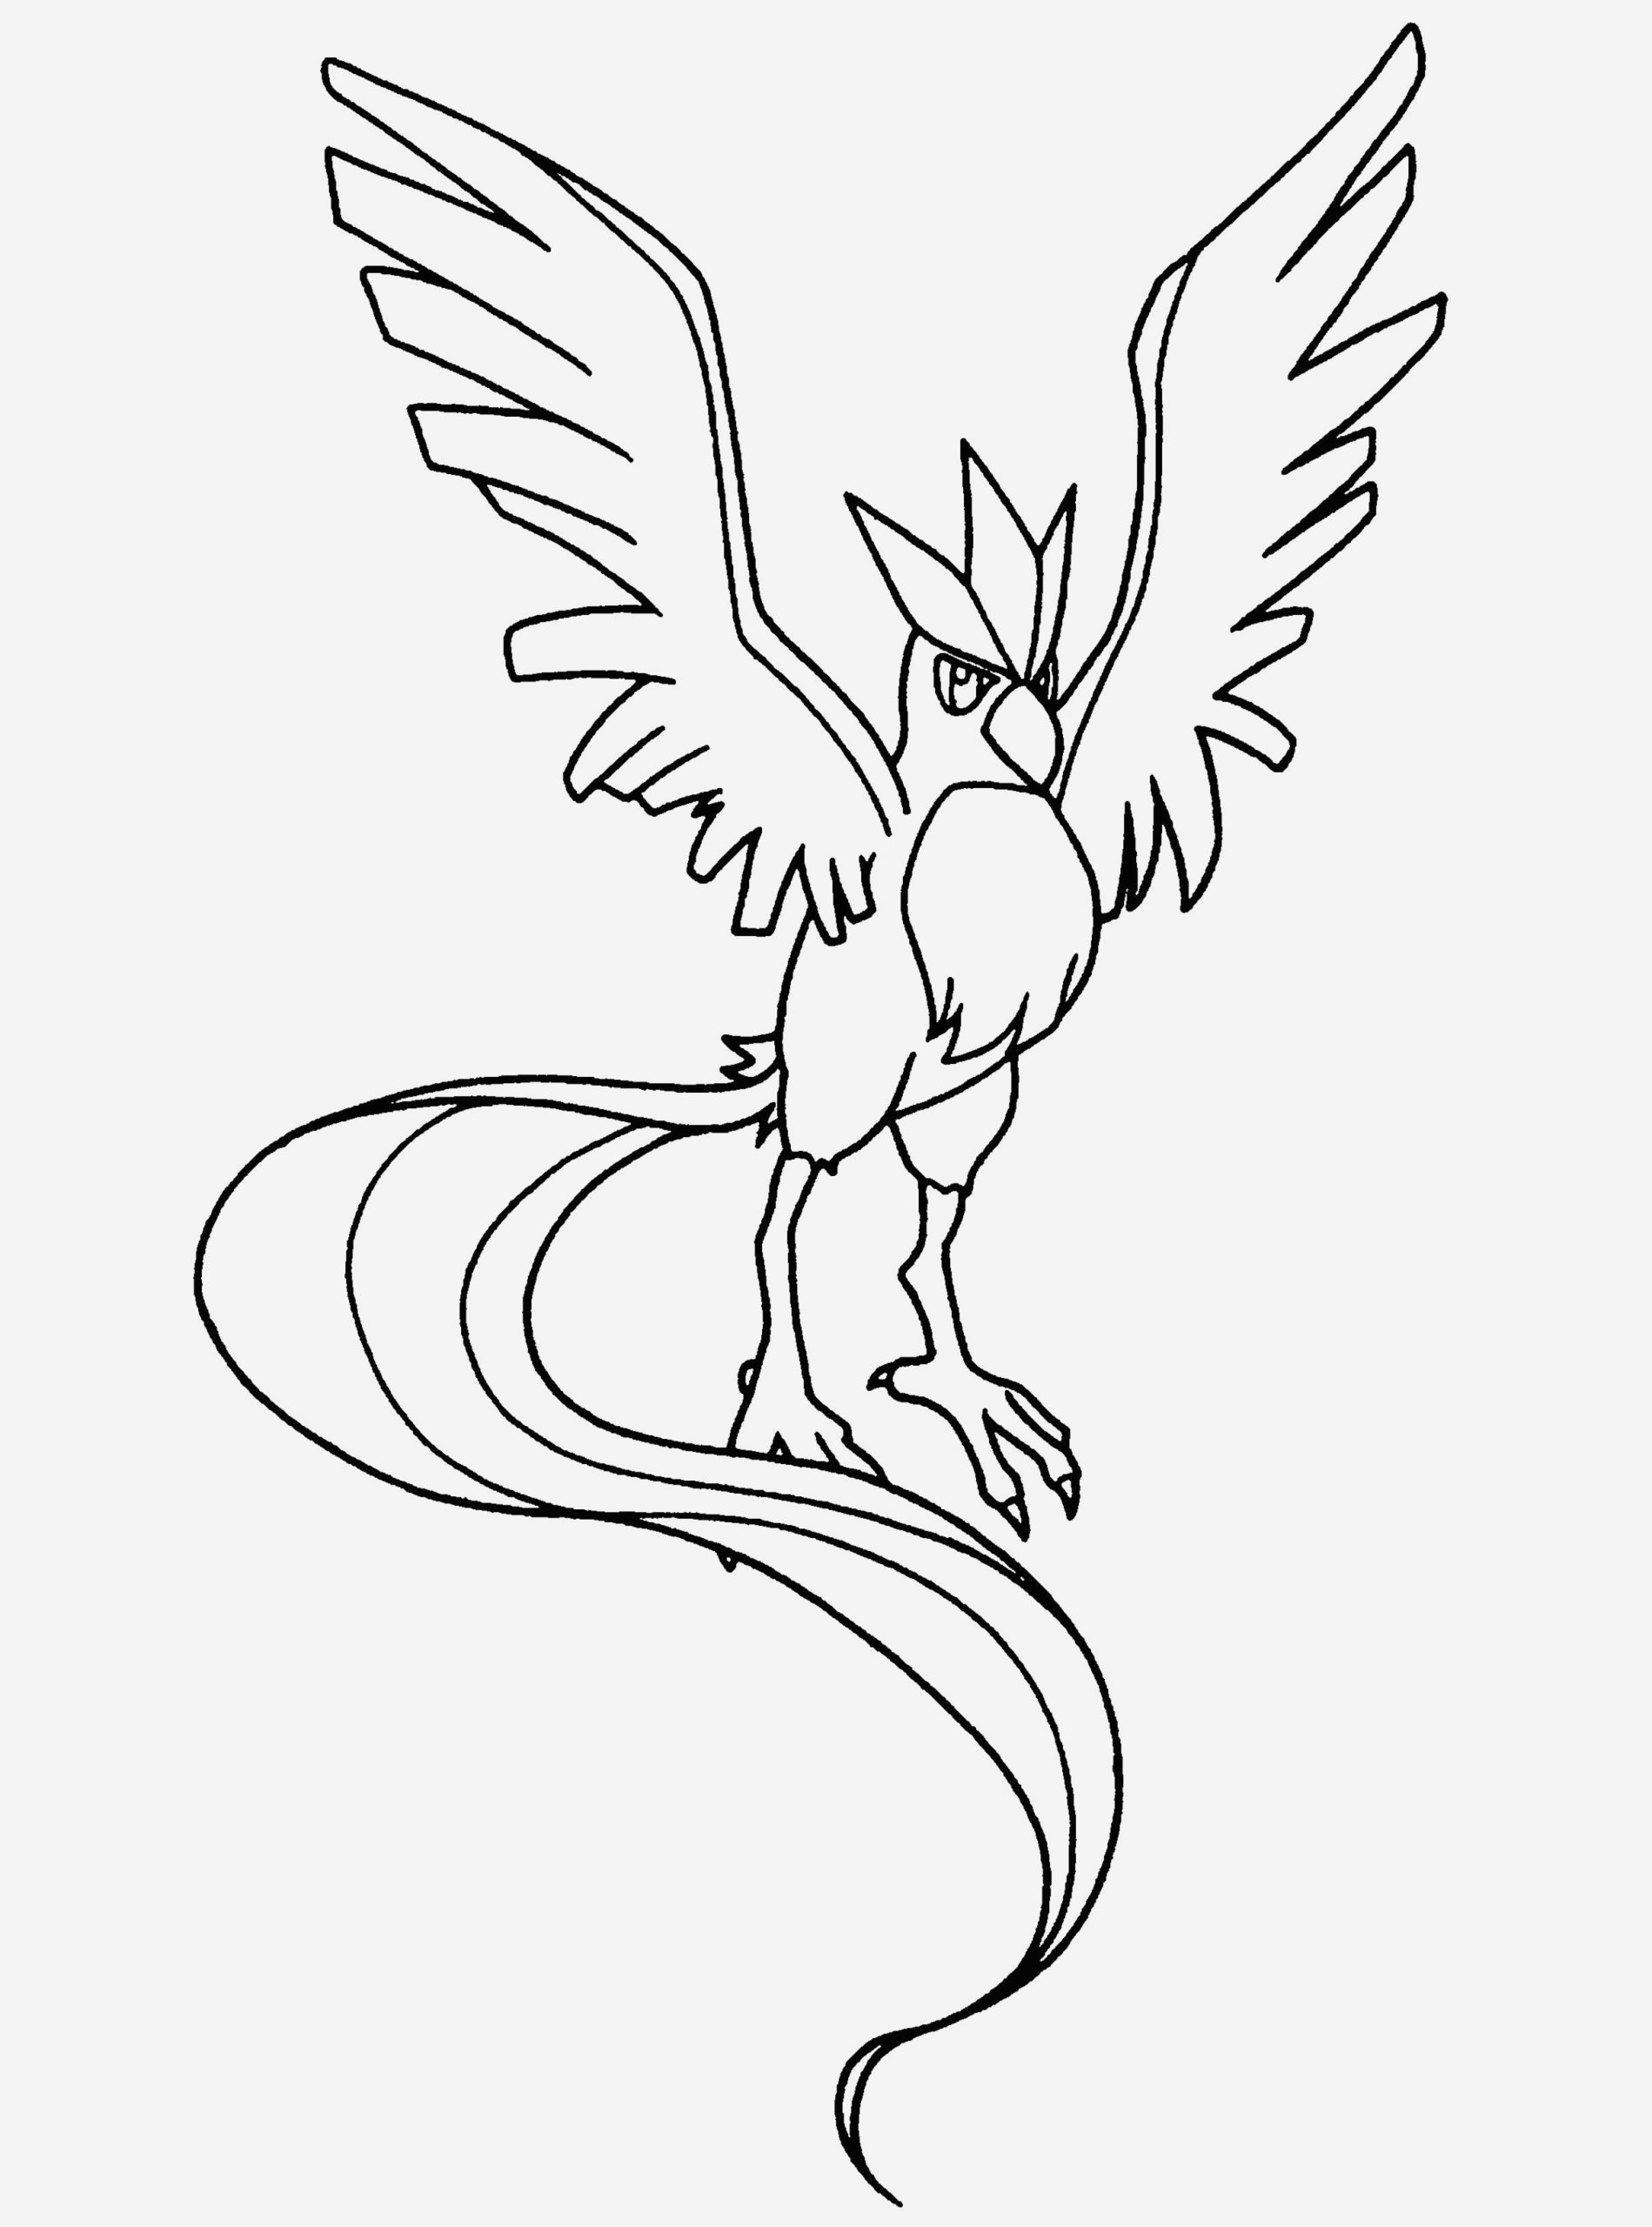 Coloriage à Imprimer Pokemon Legendaire Elegant Coloriage Pokemon Legendaire 2 Coloriagelegendaire0d Of Coloriage à Imprimer Pokemon Legendaire